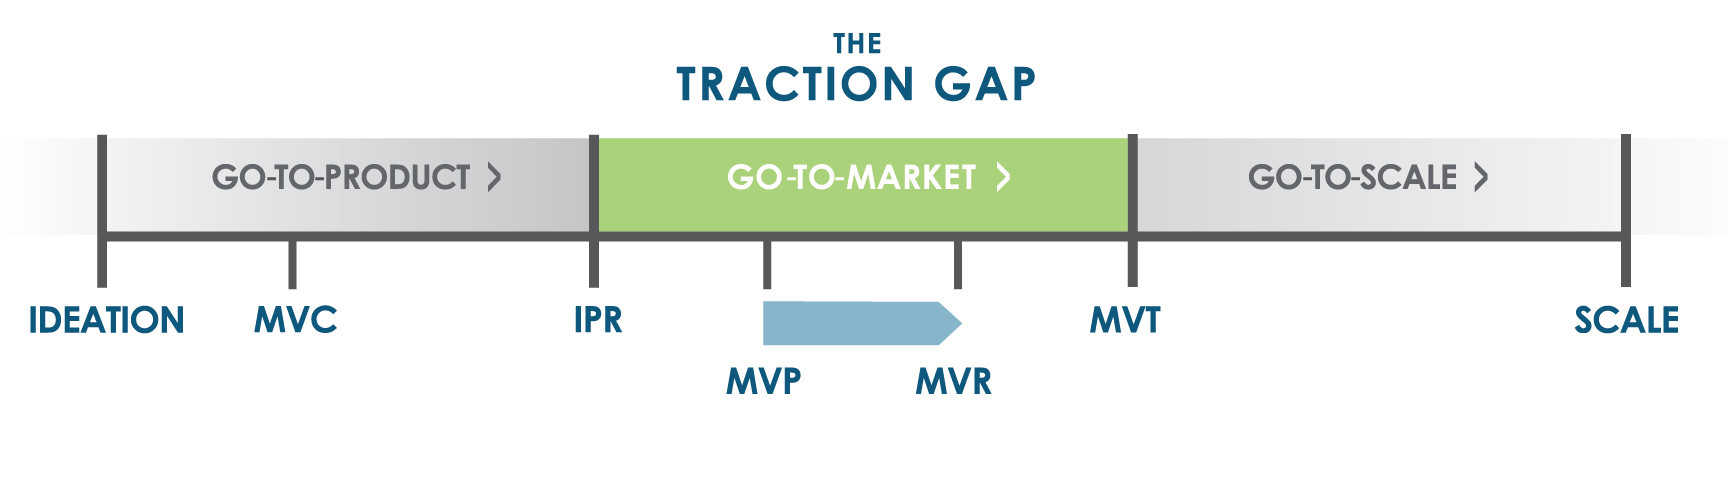 hight resolution of thinking beyond the product the challenge opportunity of minimum viable repeatability mvr wildcat venture partners wildcat venture partners